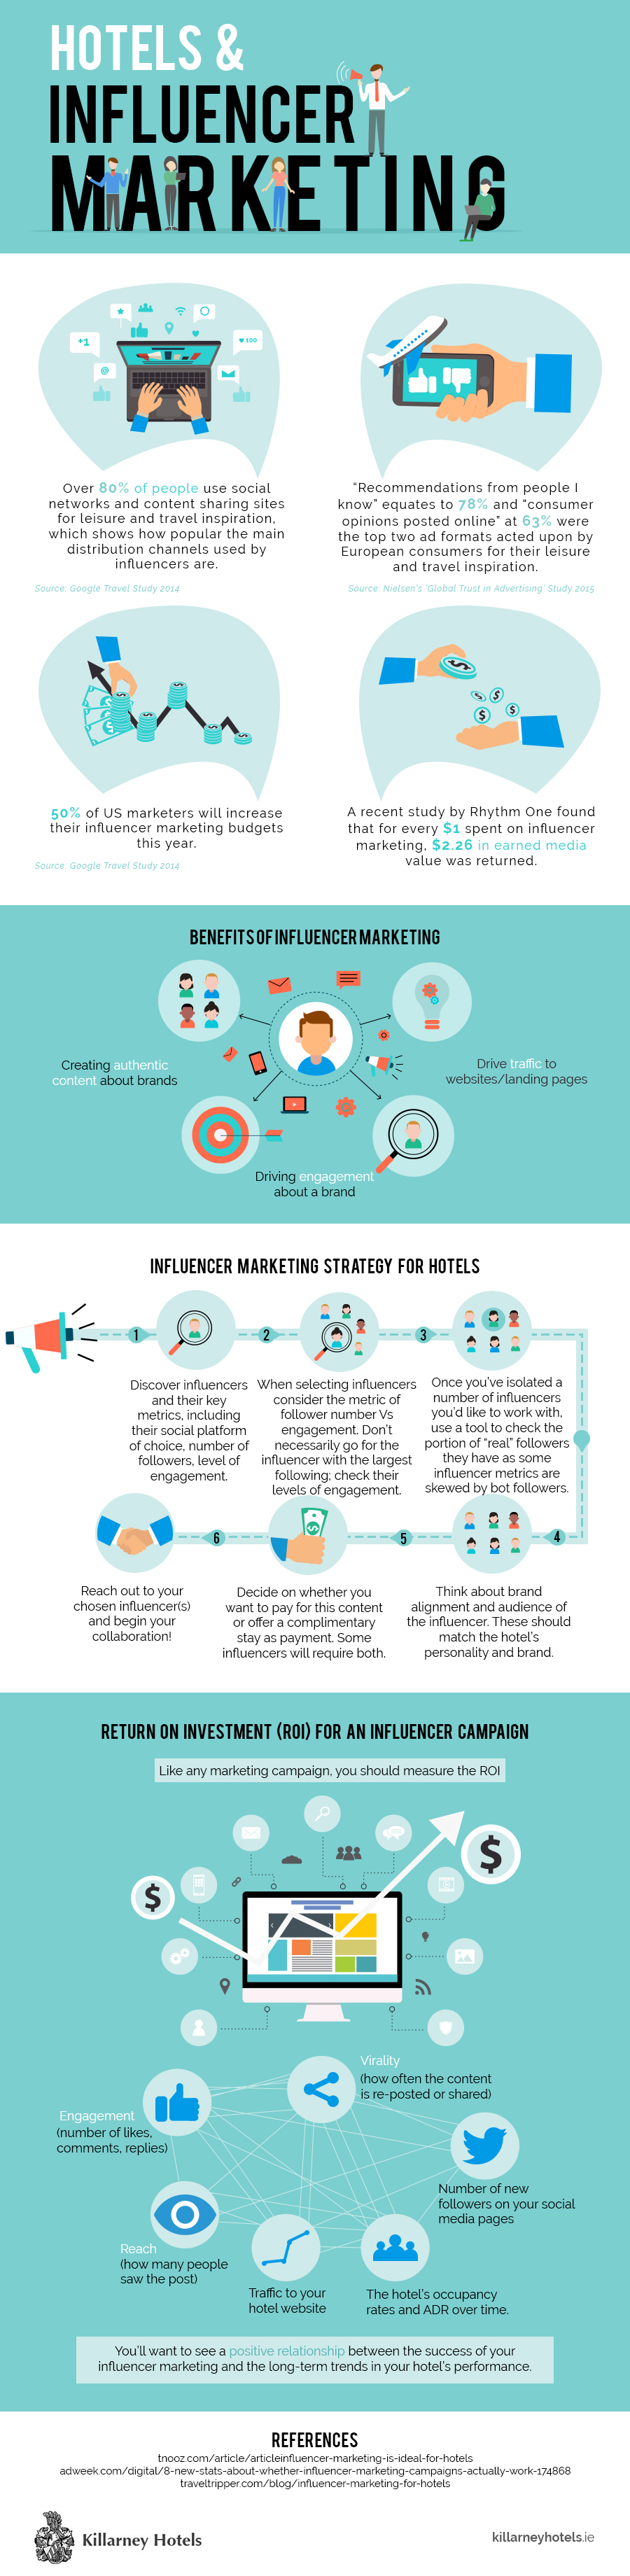 Hotels-Influencer-Marketing–Infographic.jpg